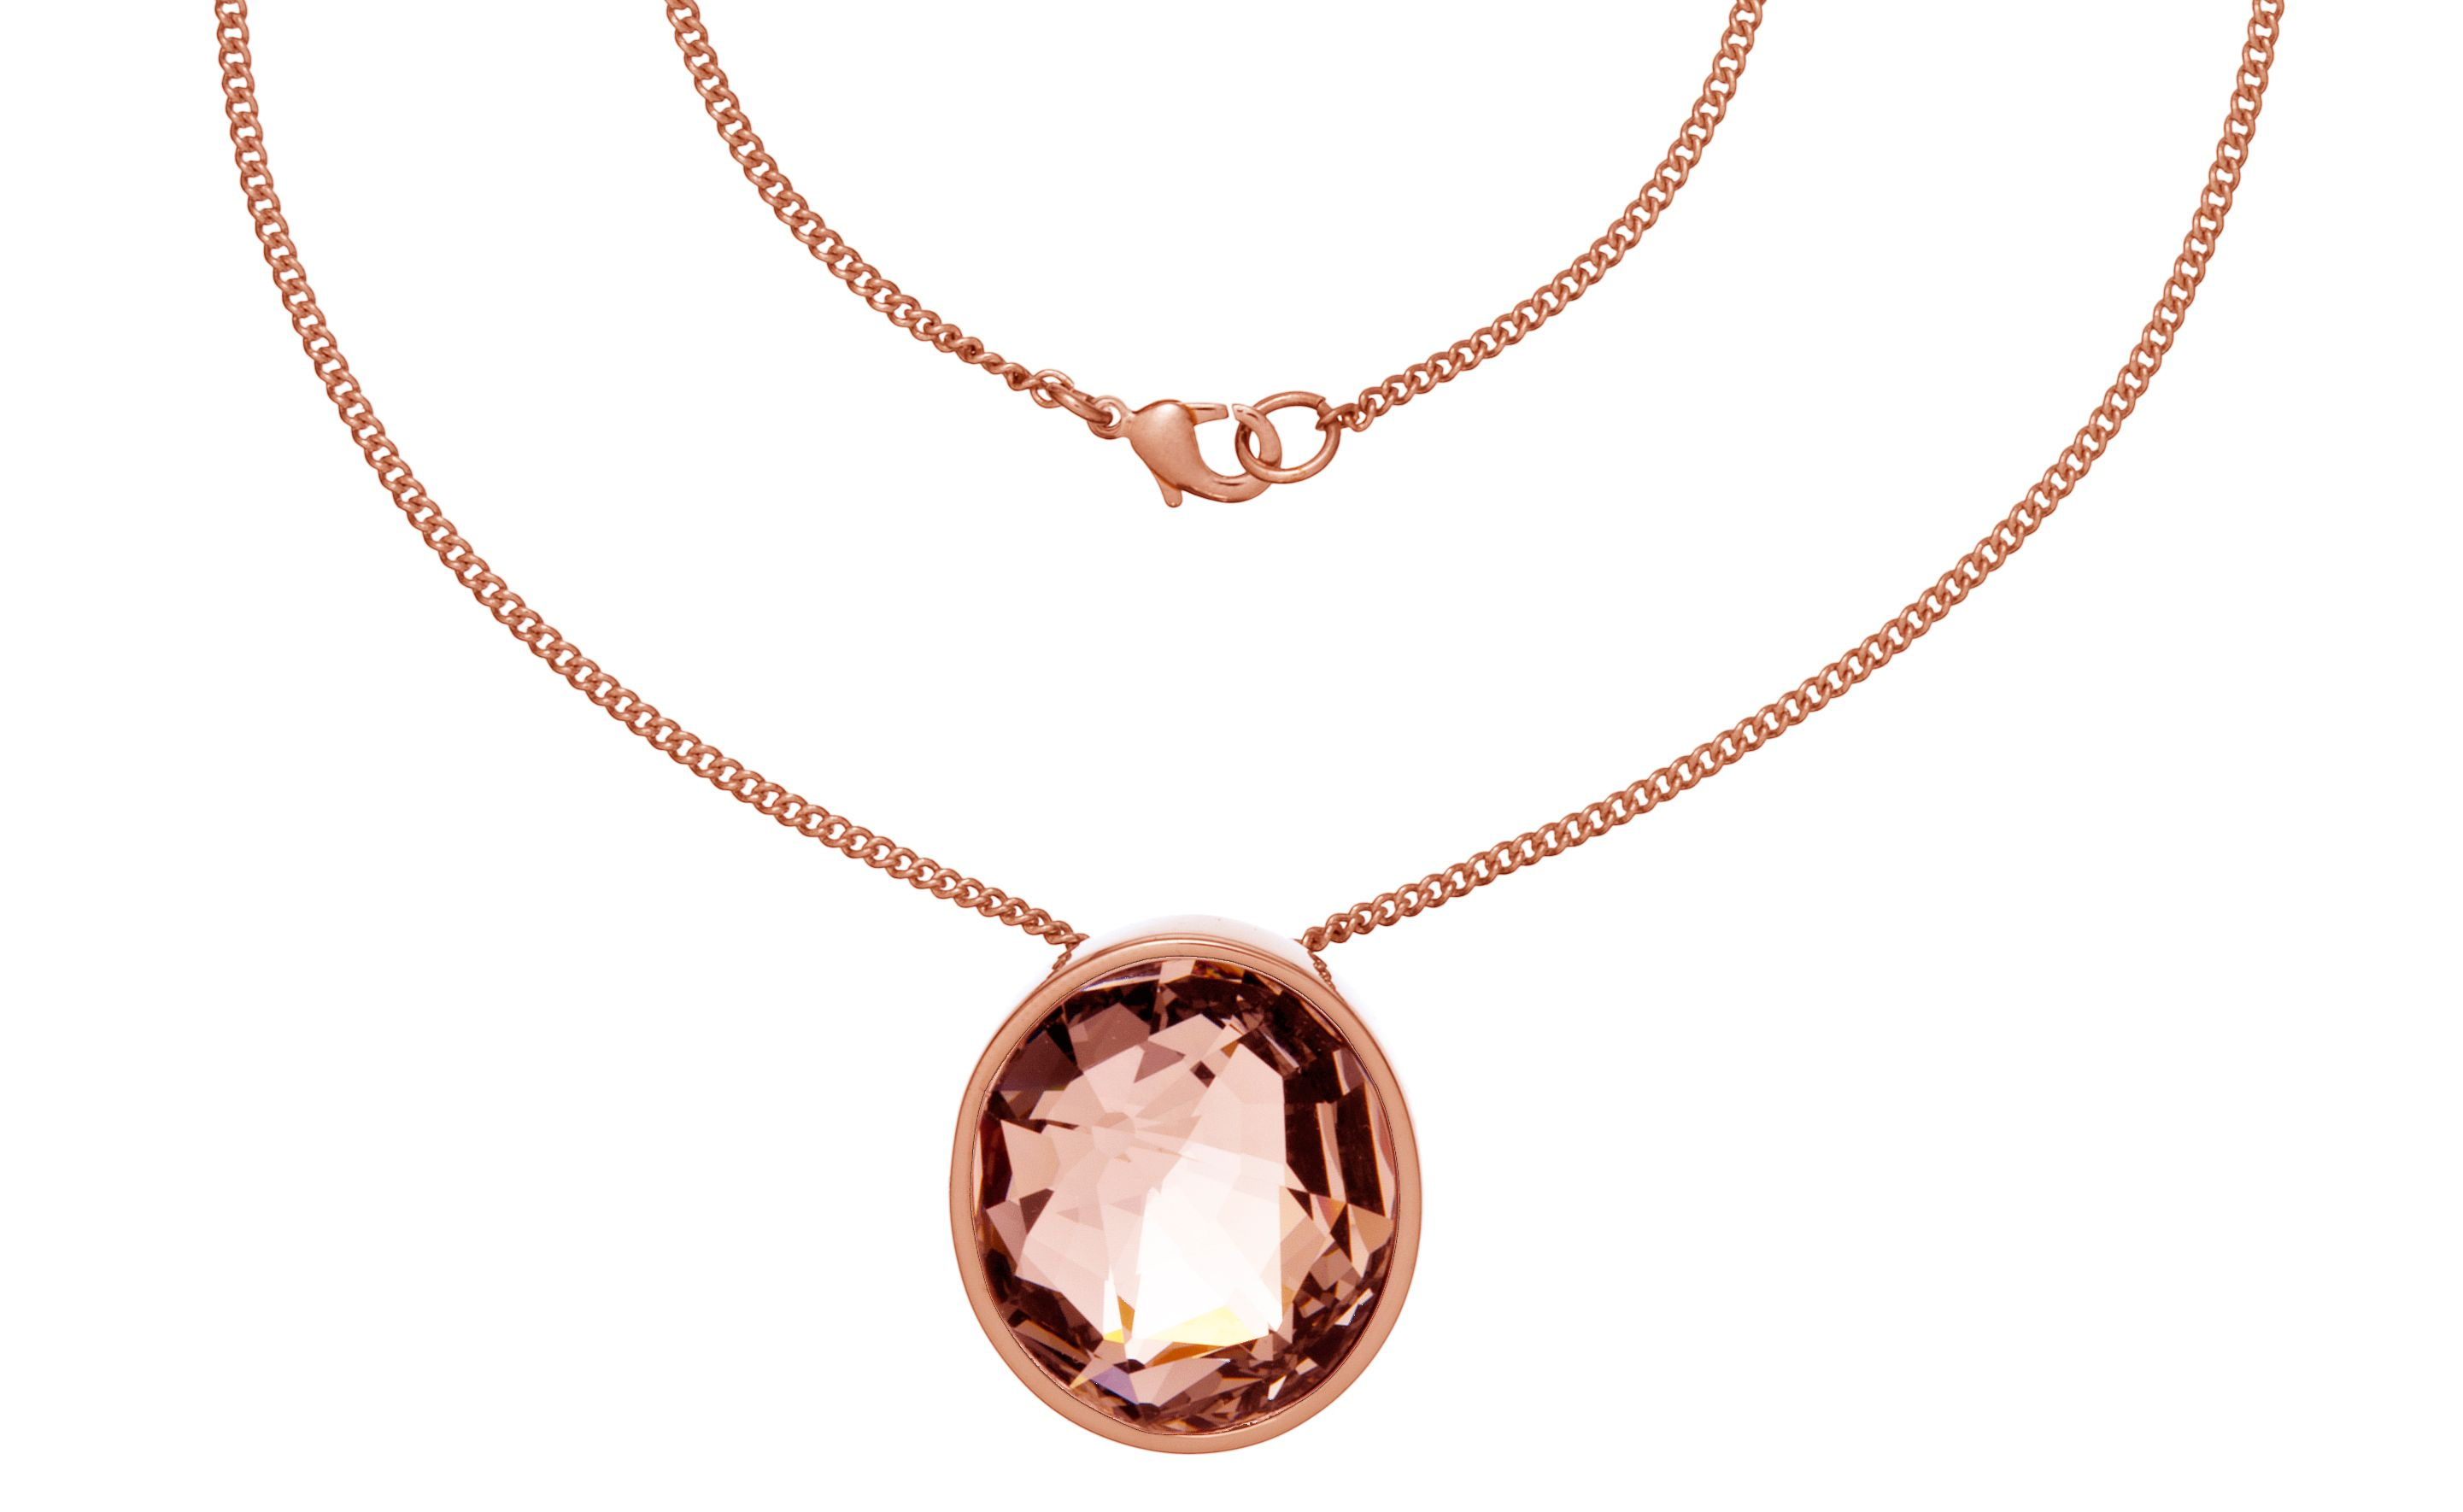 Aurora Swarovski 18ct Rose Gold Plated Pendant